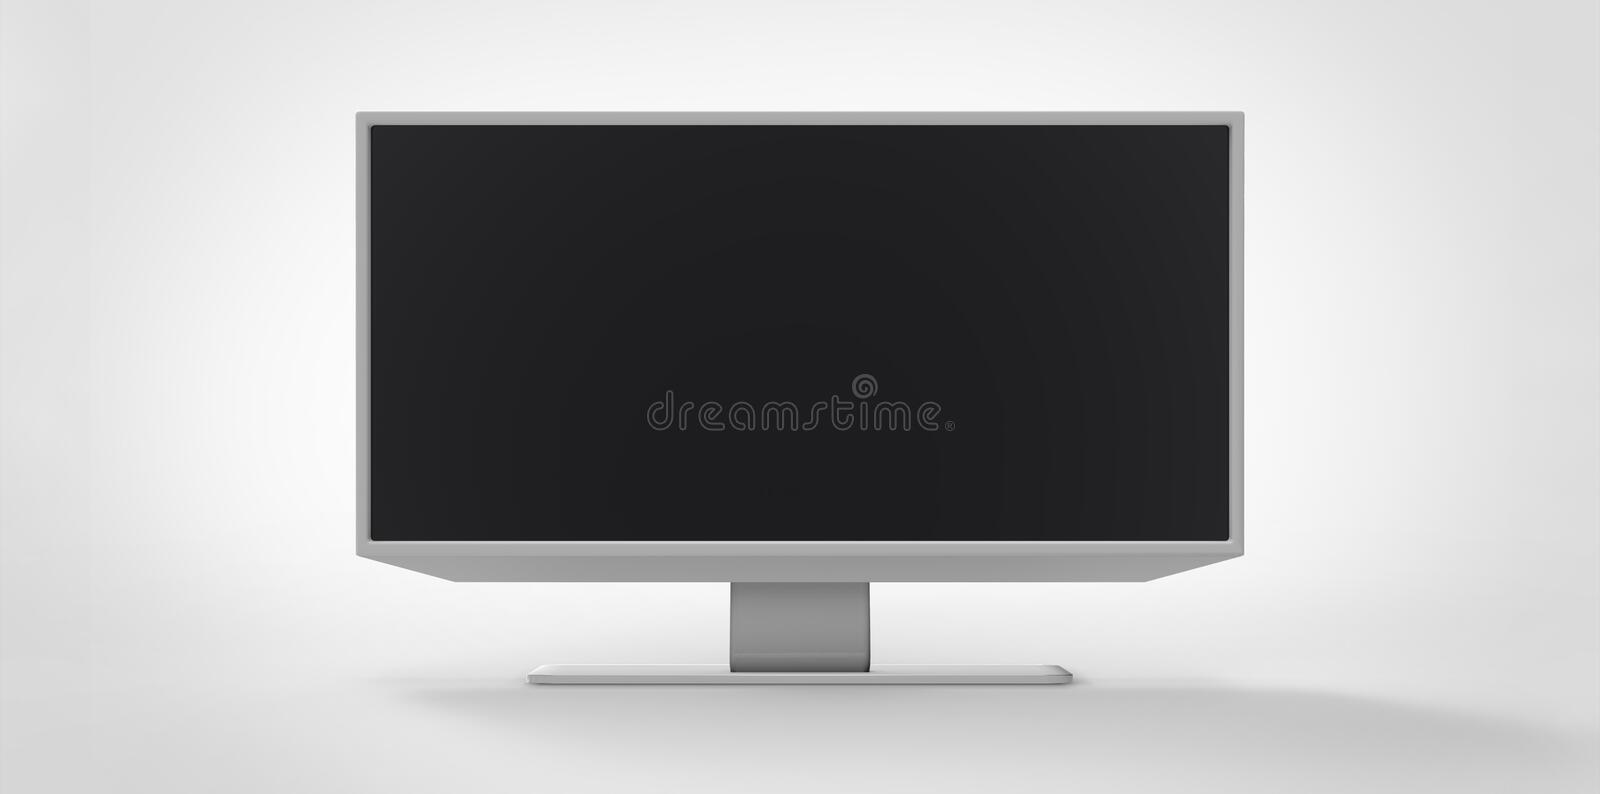 Grey gray silver metal iron reflective 3D TV LCD on white background vector illustration